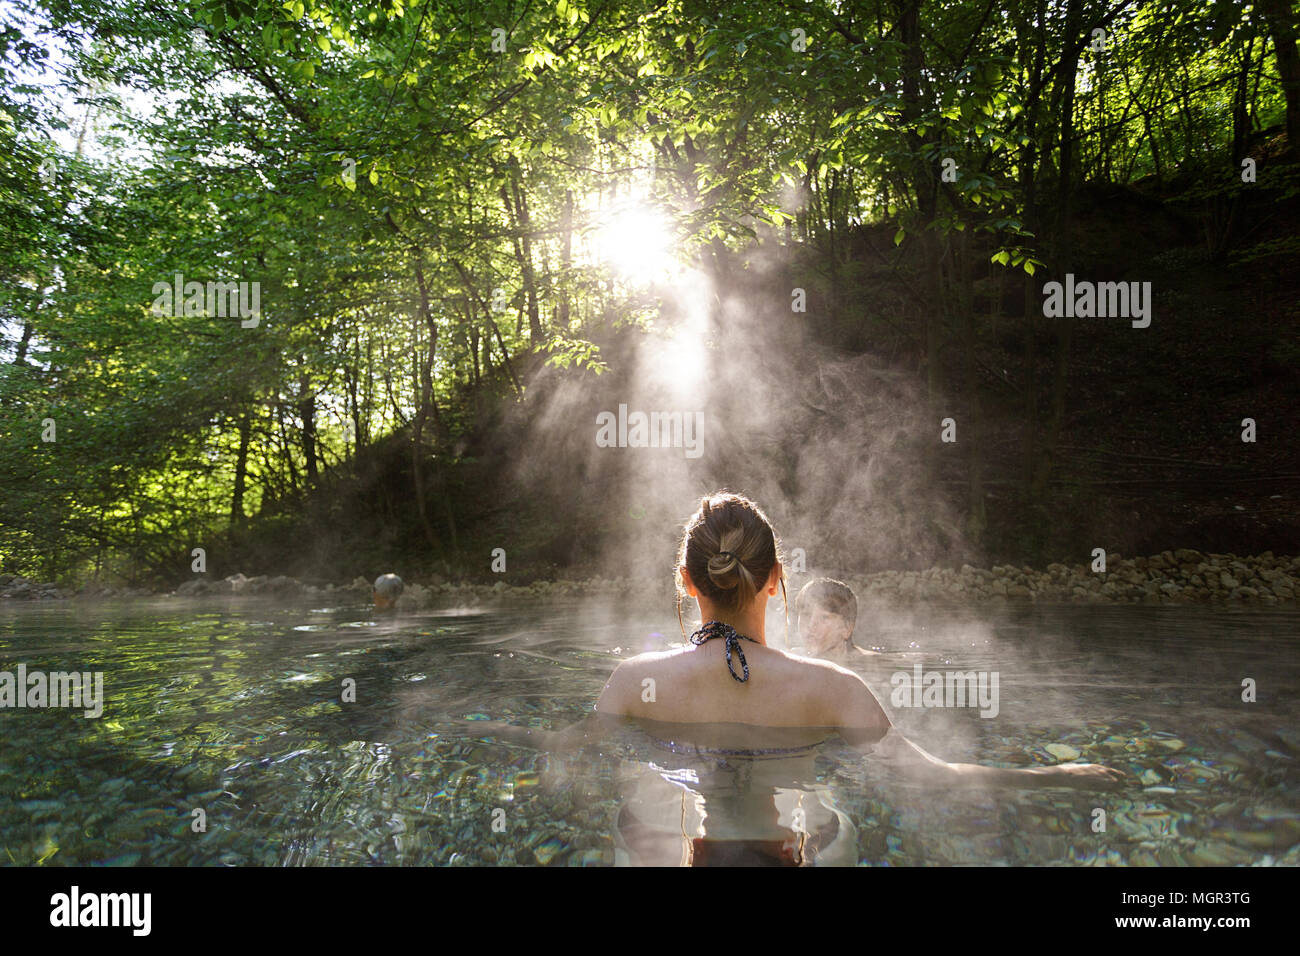 Woman relaxing in natural Hot spring dans la forêt, Maibachl, l'Autriche, l'Europe. Photo Stock